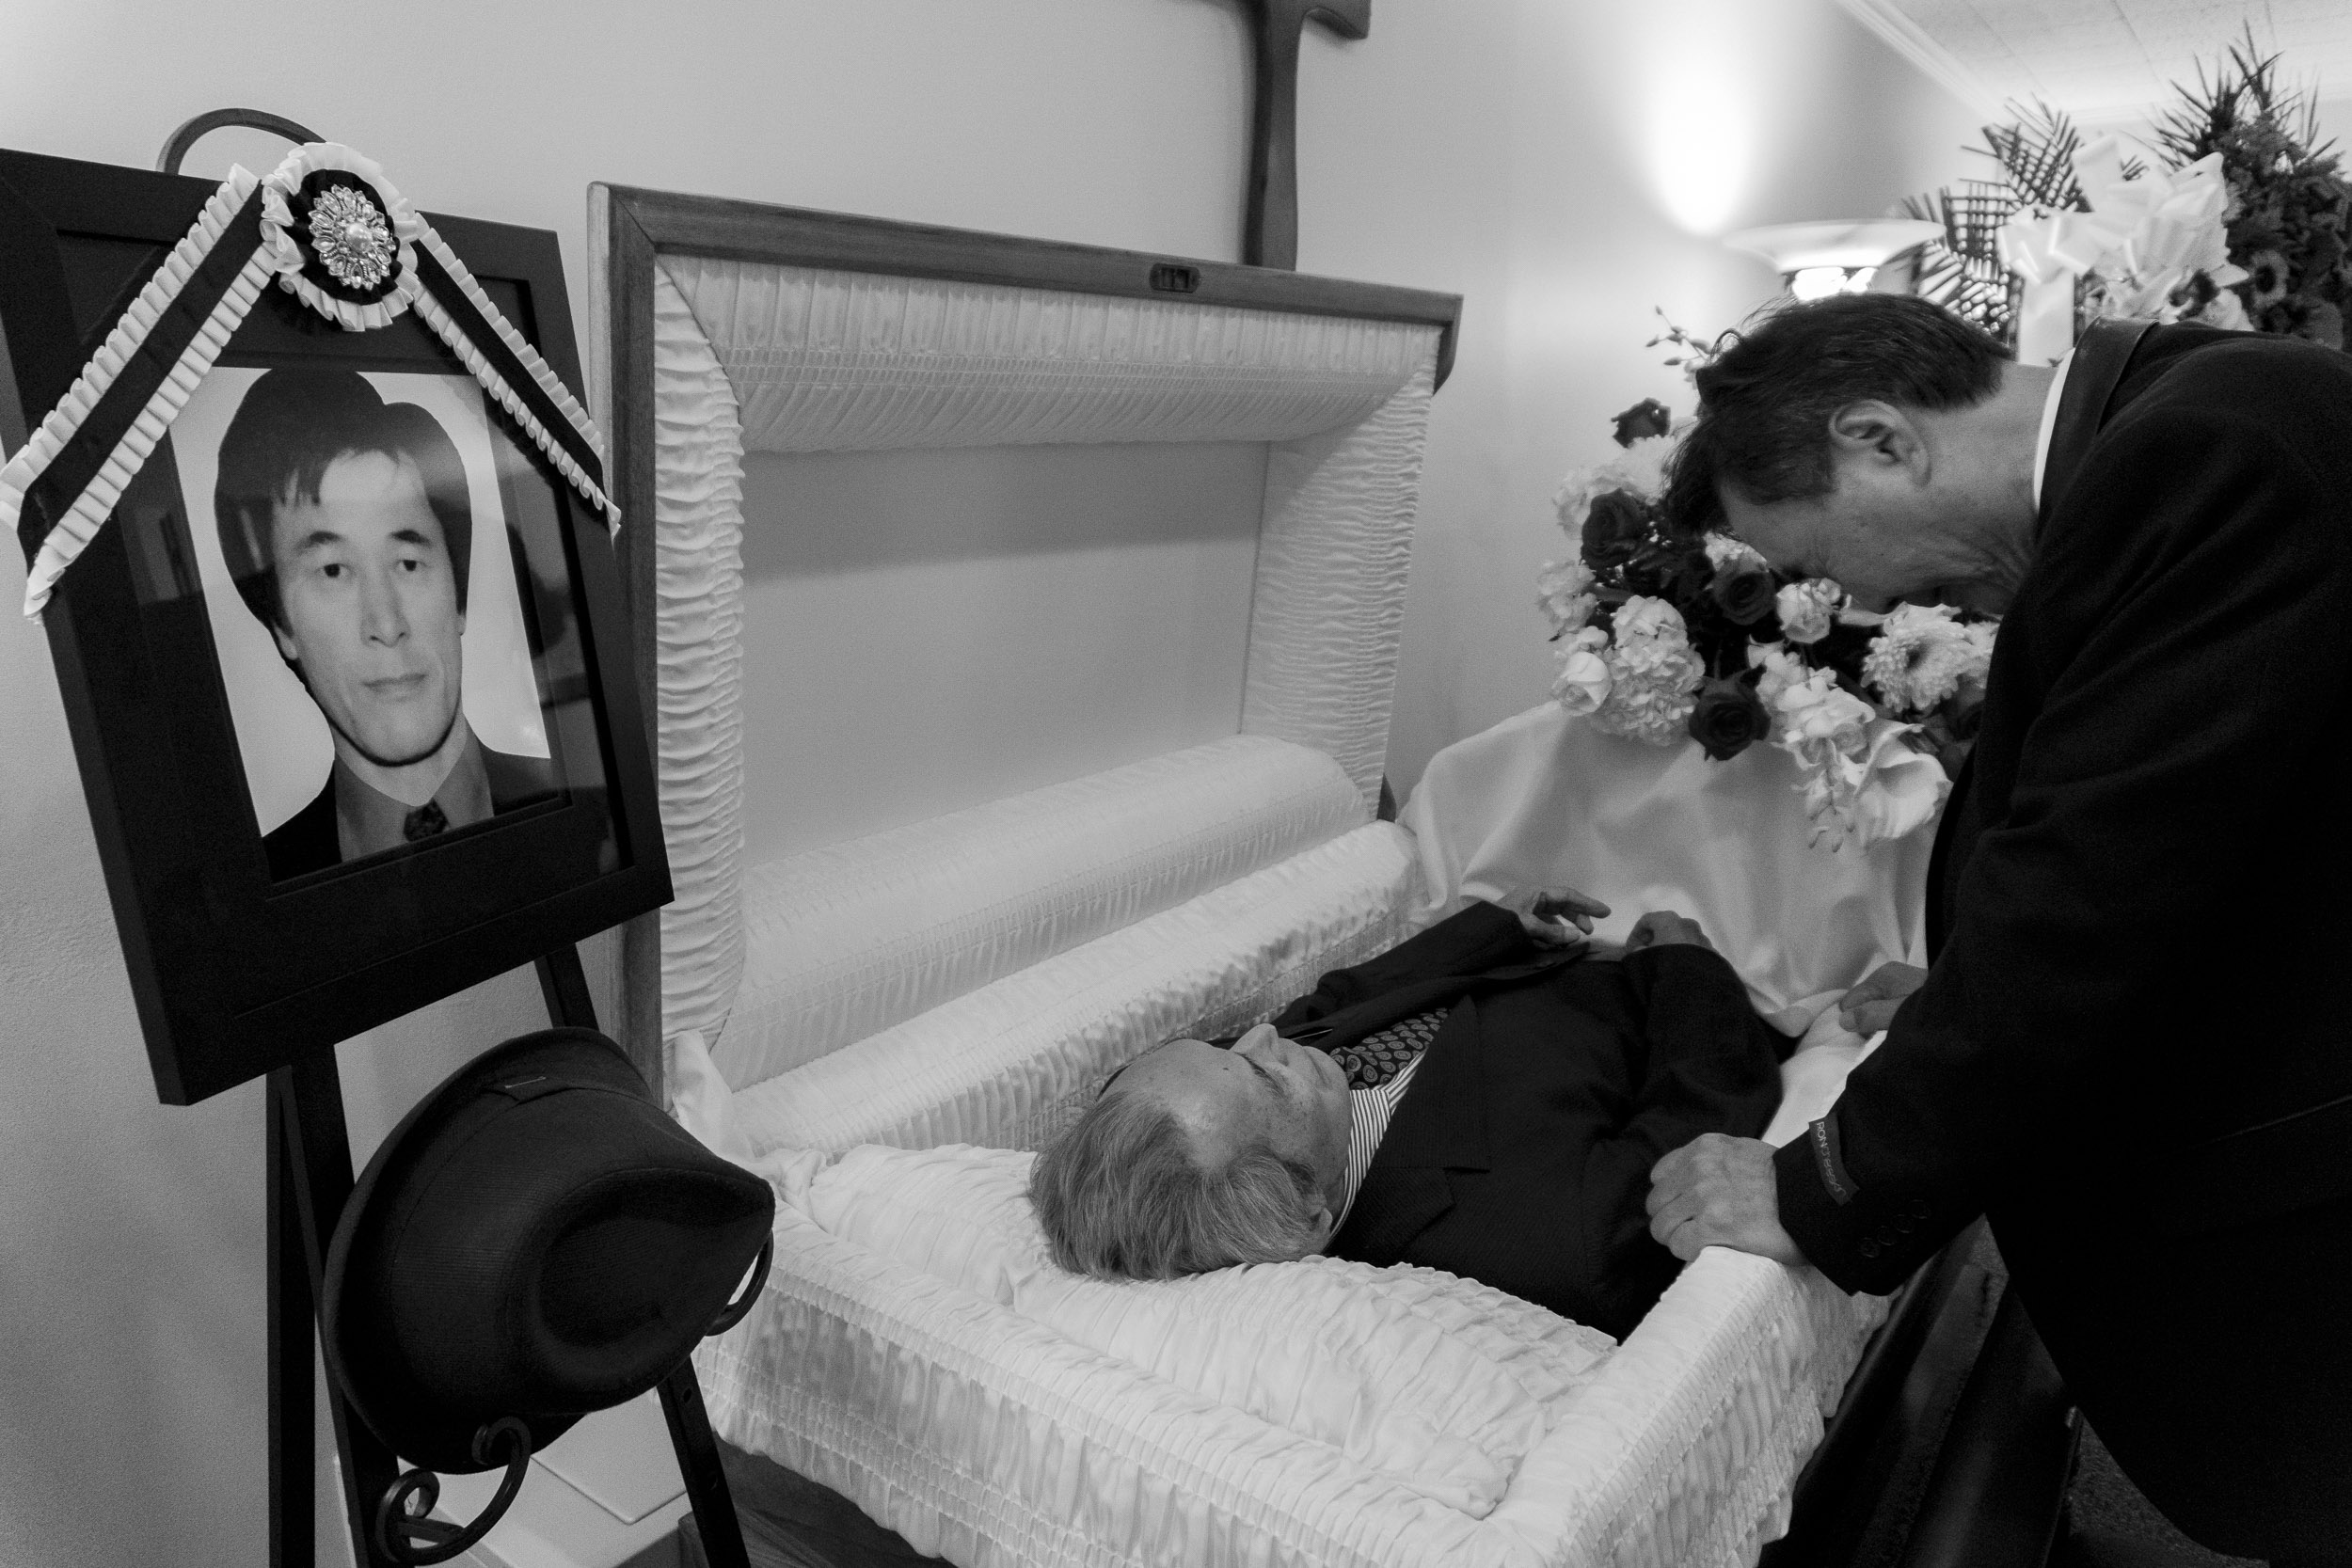 Suksoo Kim, who Chinsoo Kim had the closest relationship with out of his surviving siblings, looks at his older brother's face for the final time before the casket is closed. A picture of Chinsoo Kim looks over the scene. Chinsoo Kim died on 9/14/17 after a yearlong battle with lung cancer. September 19, 2017. Calvin Funeral Home, Brooklyn, NY. Photo by Sung Cho.